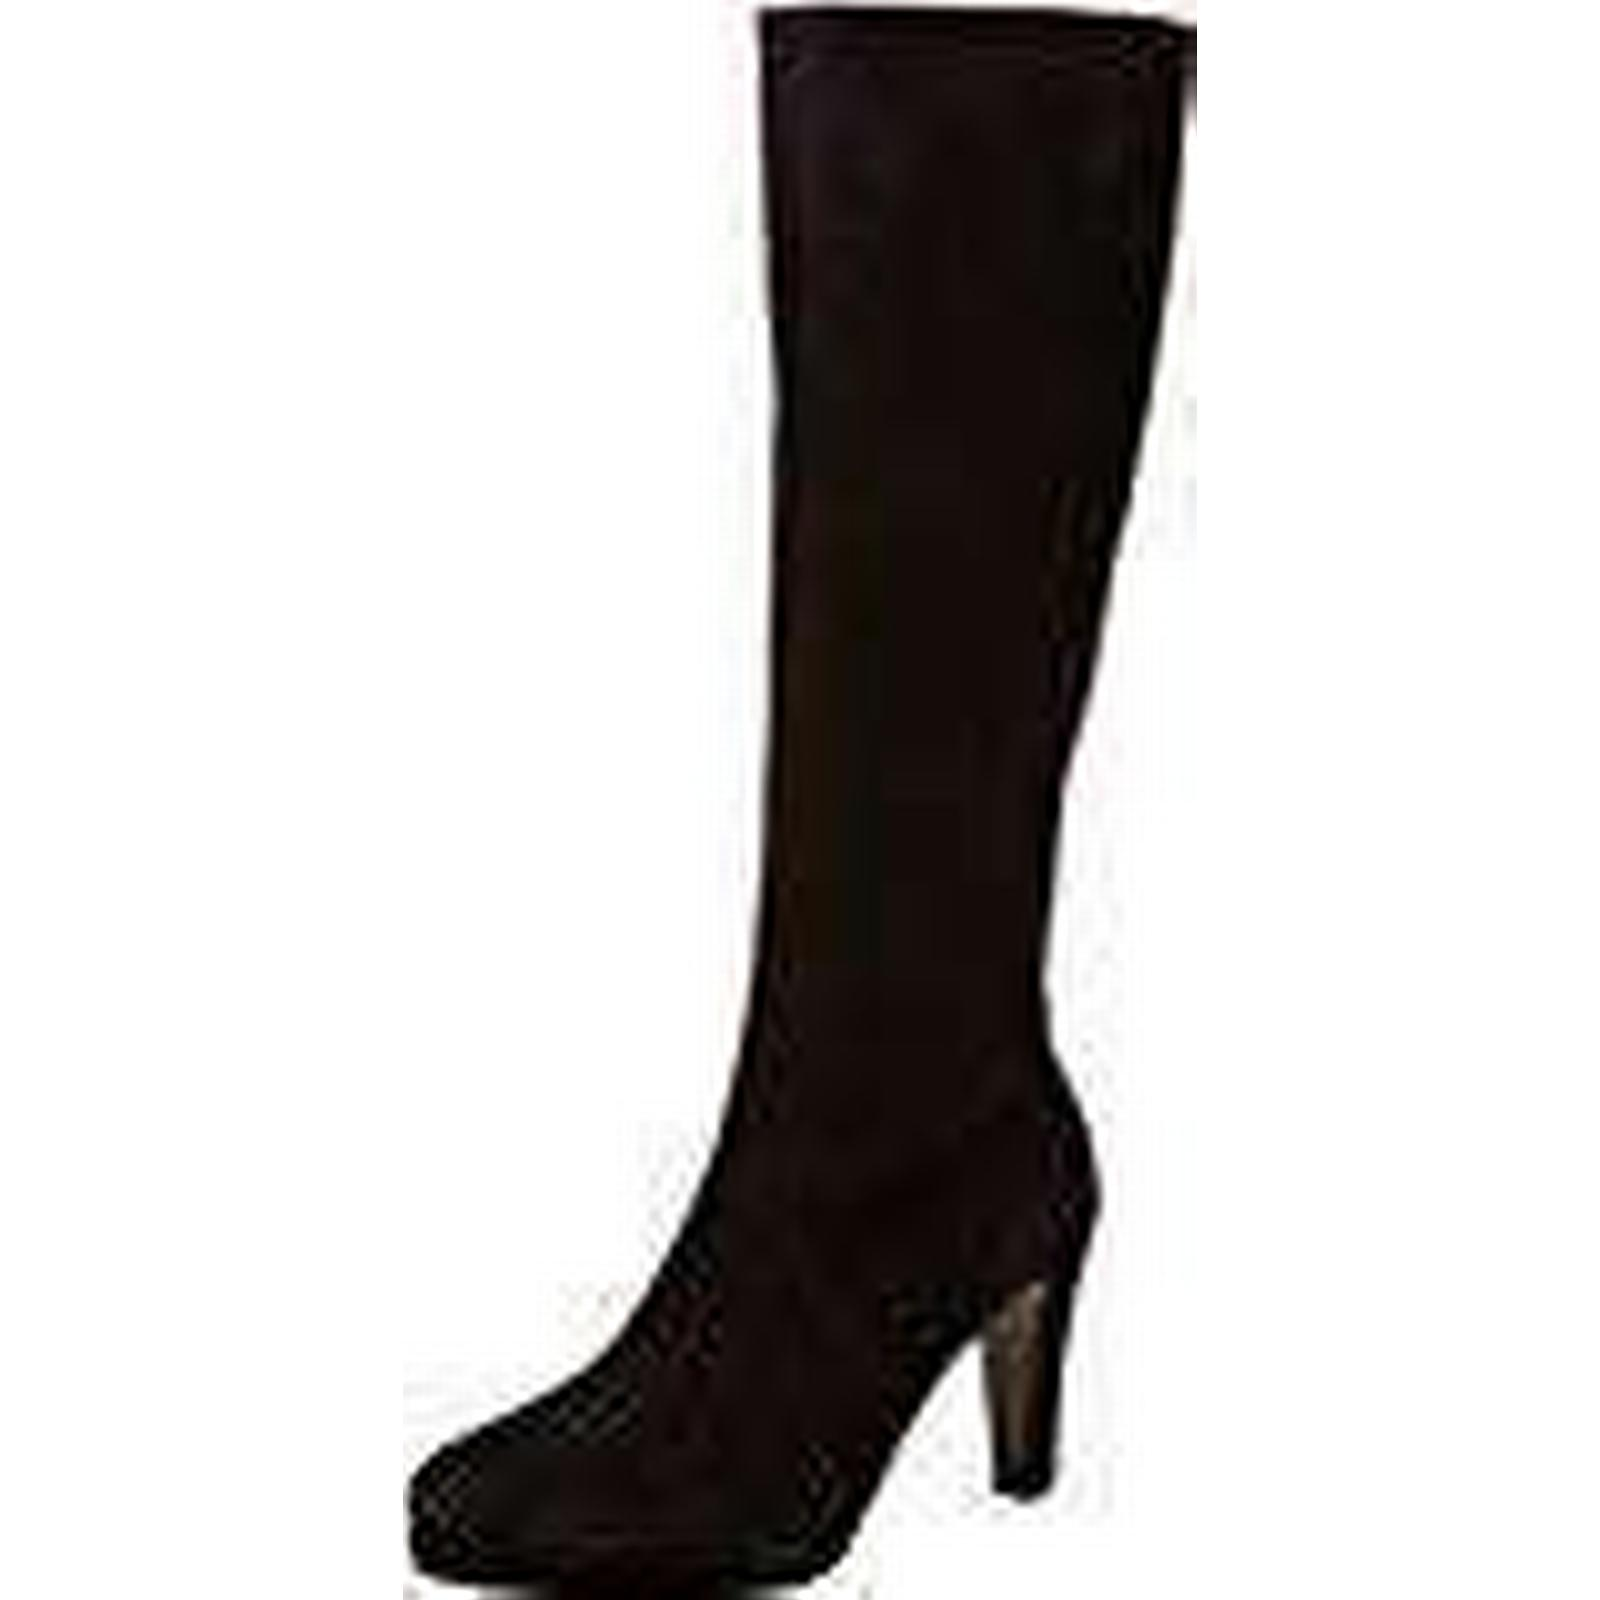 Gabor Women's Basic Boots, Black 8 Schwarz 17, 8 UK 8 Black UK 7f9e13